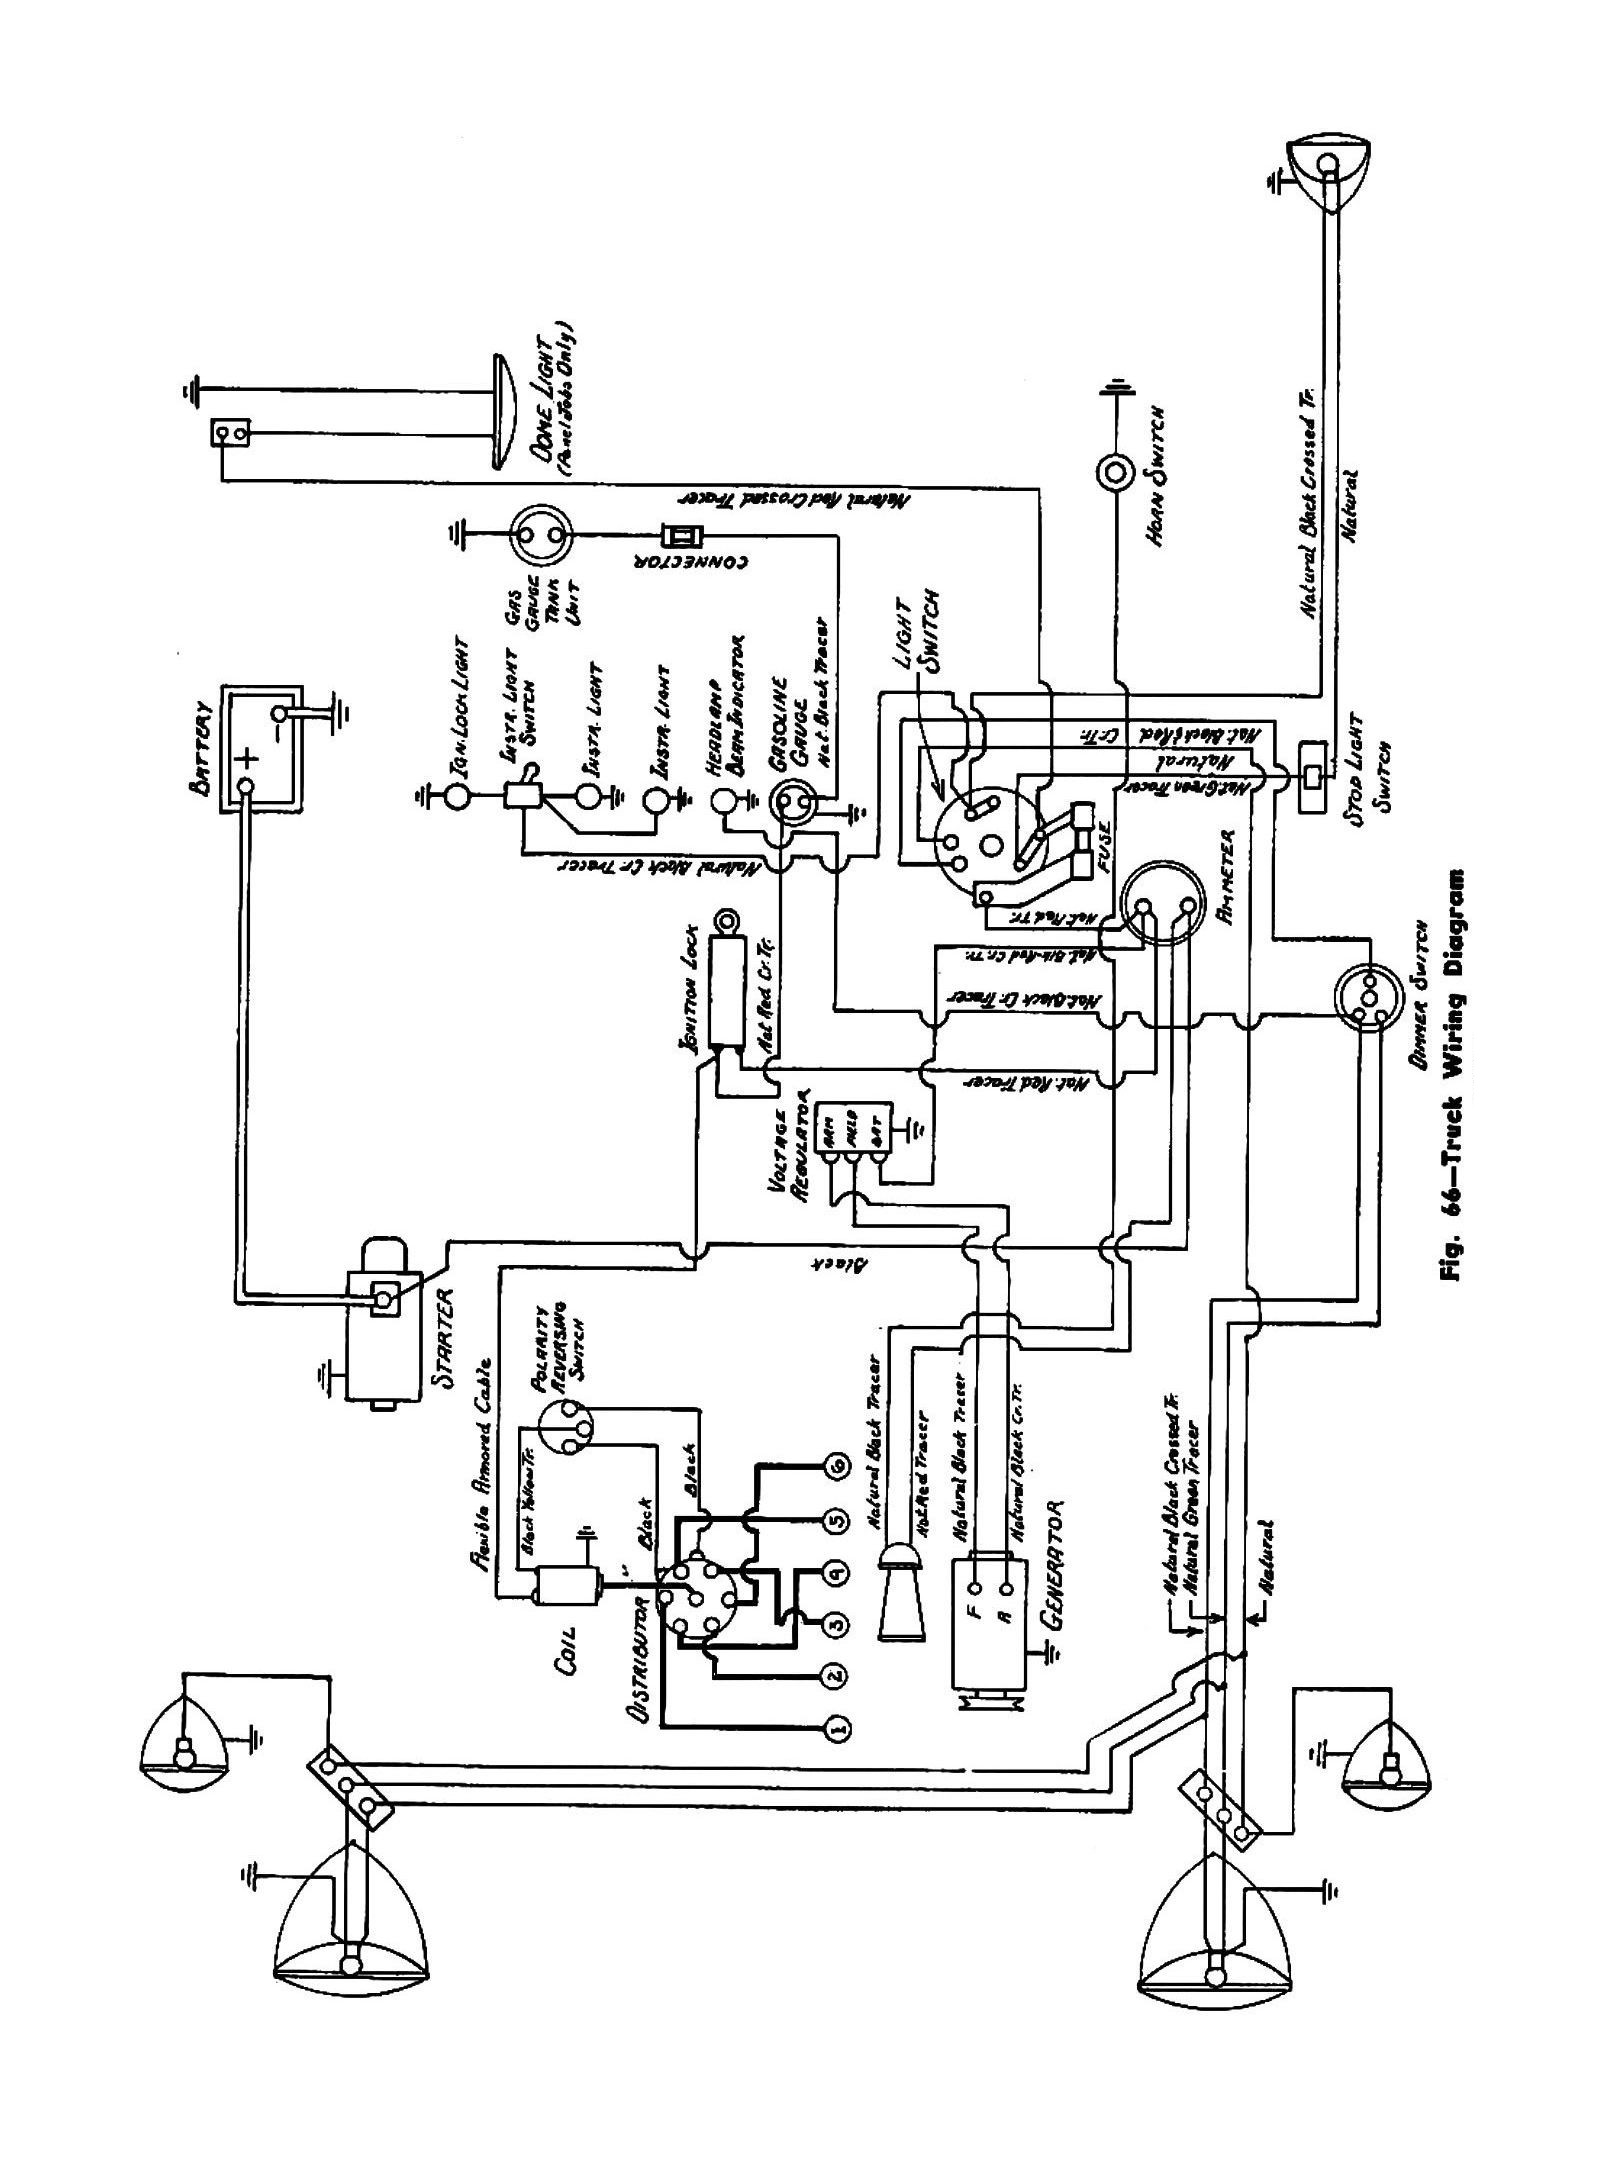 Chevrolet Starter Connection Schematic Worksheet And Wiring Diagram Reversing Truck Schematics Detailed Rh Jppastryarts Com Basic Circuit